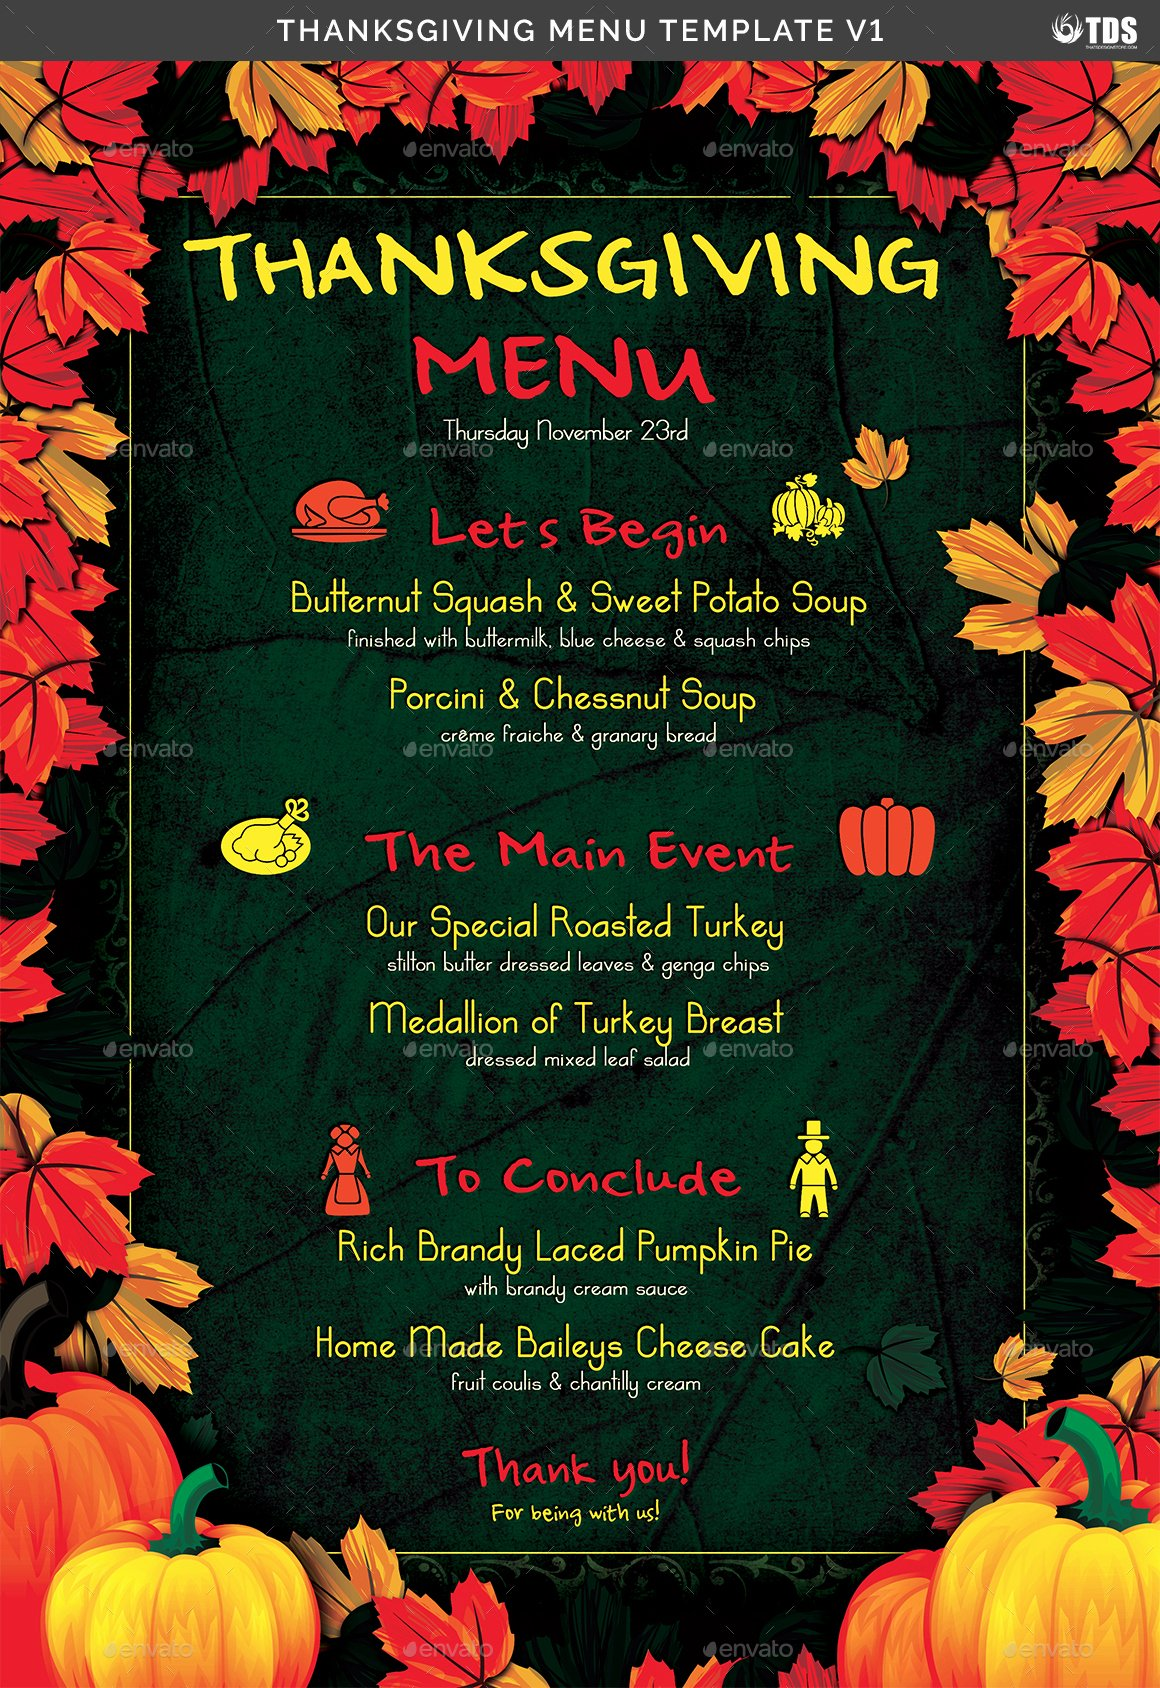 Thanksgiving Dinner Menu Template Lovely Thanksgiving Menu Template V1 by Lou606